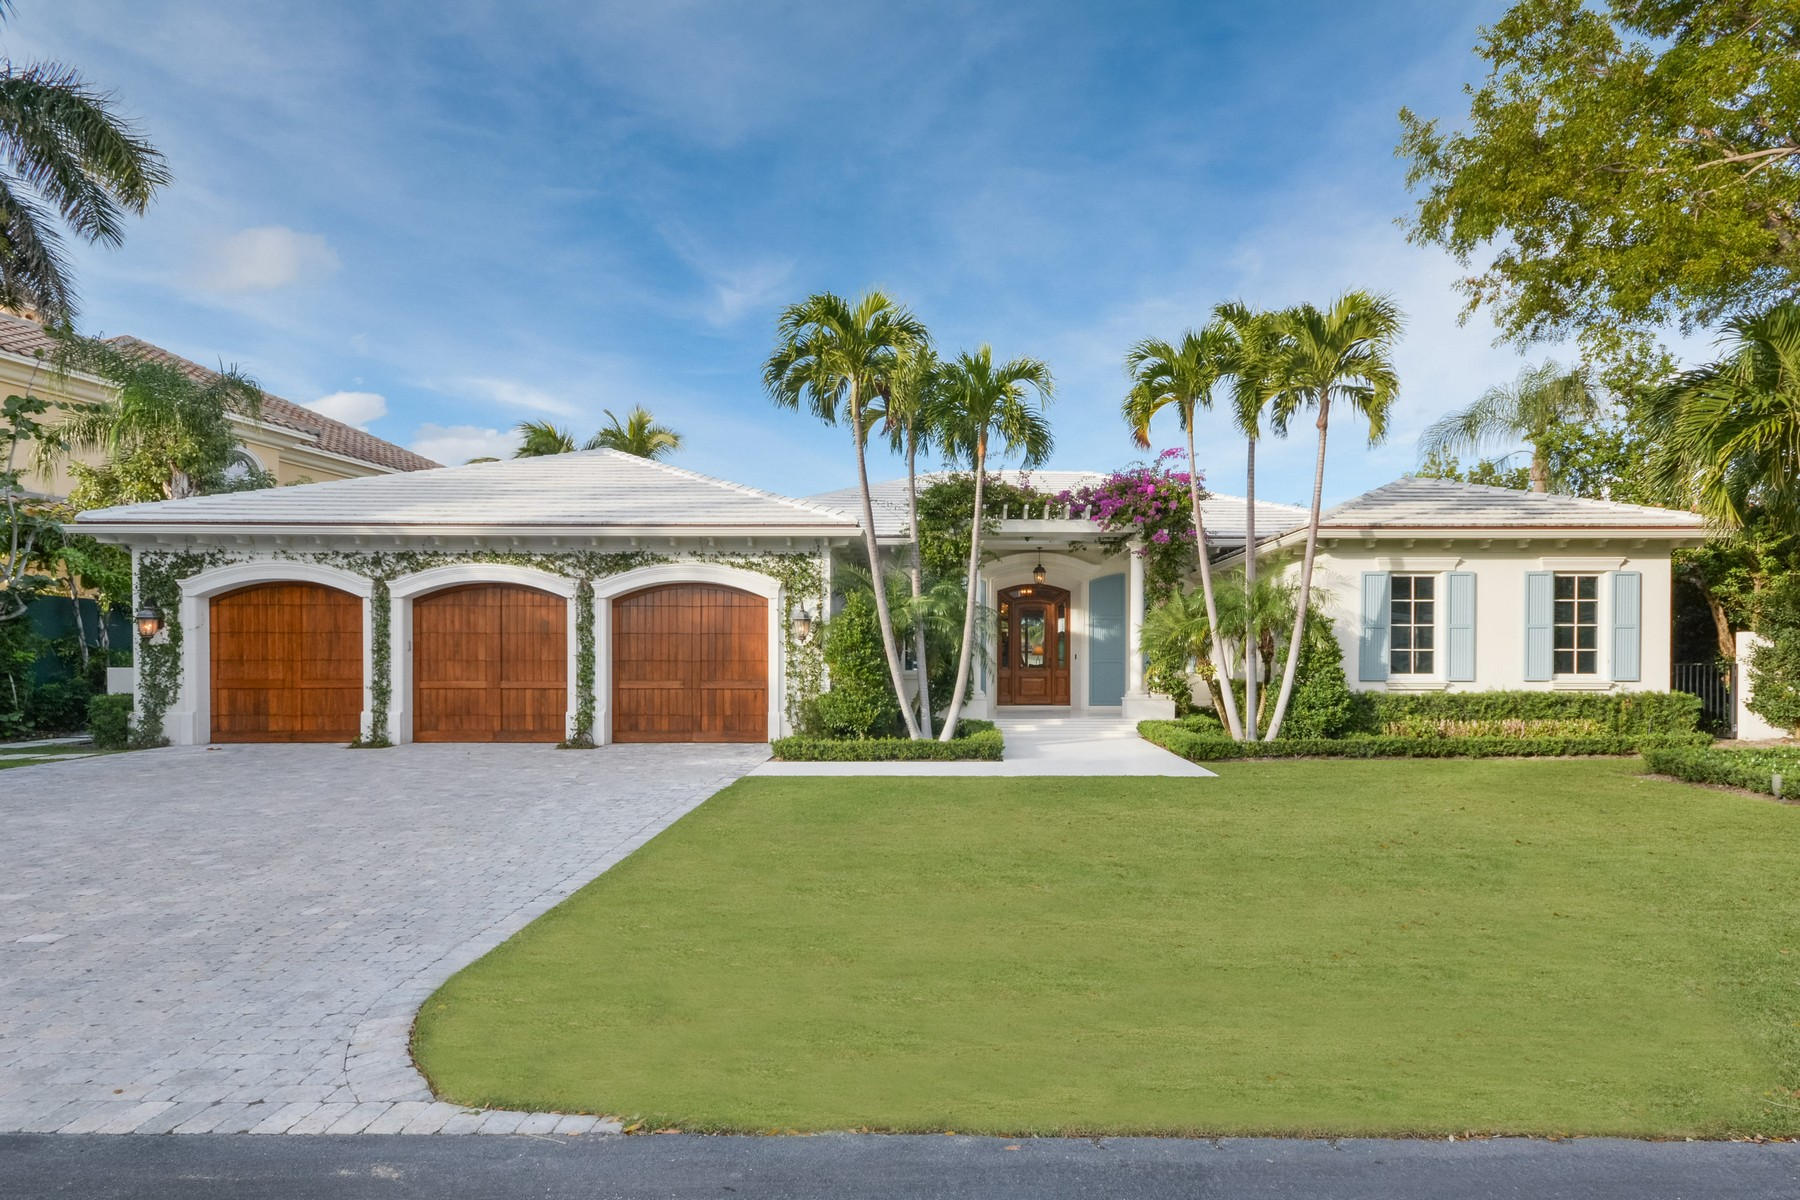 Single Family Home for Active at 651 Sanctuary Dr , Boca Raton, FL 33431 651 Sanctuary Dr Boca Raton, Florida 33431 United States